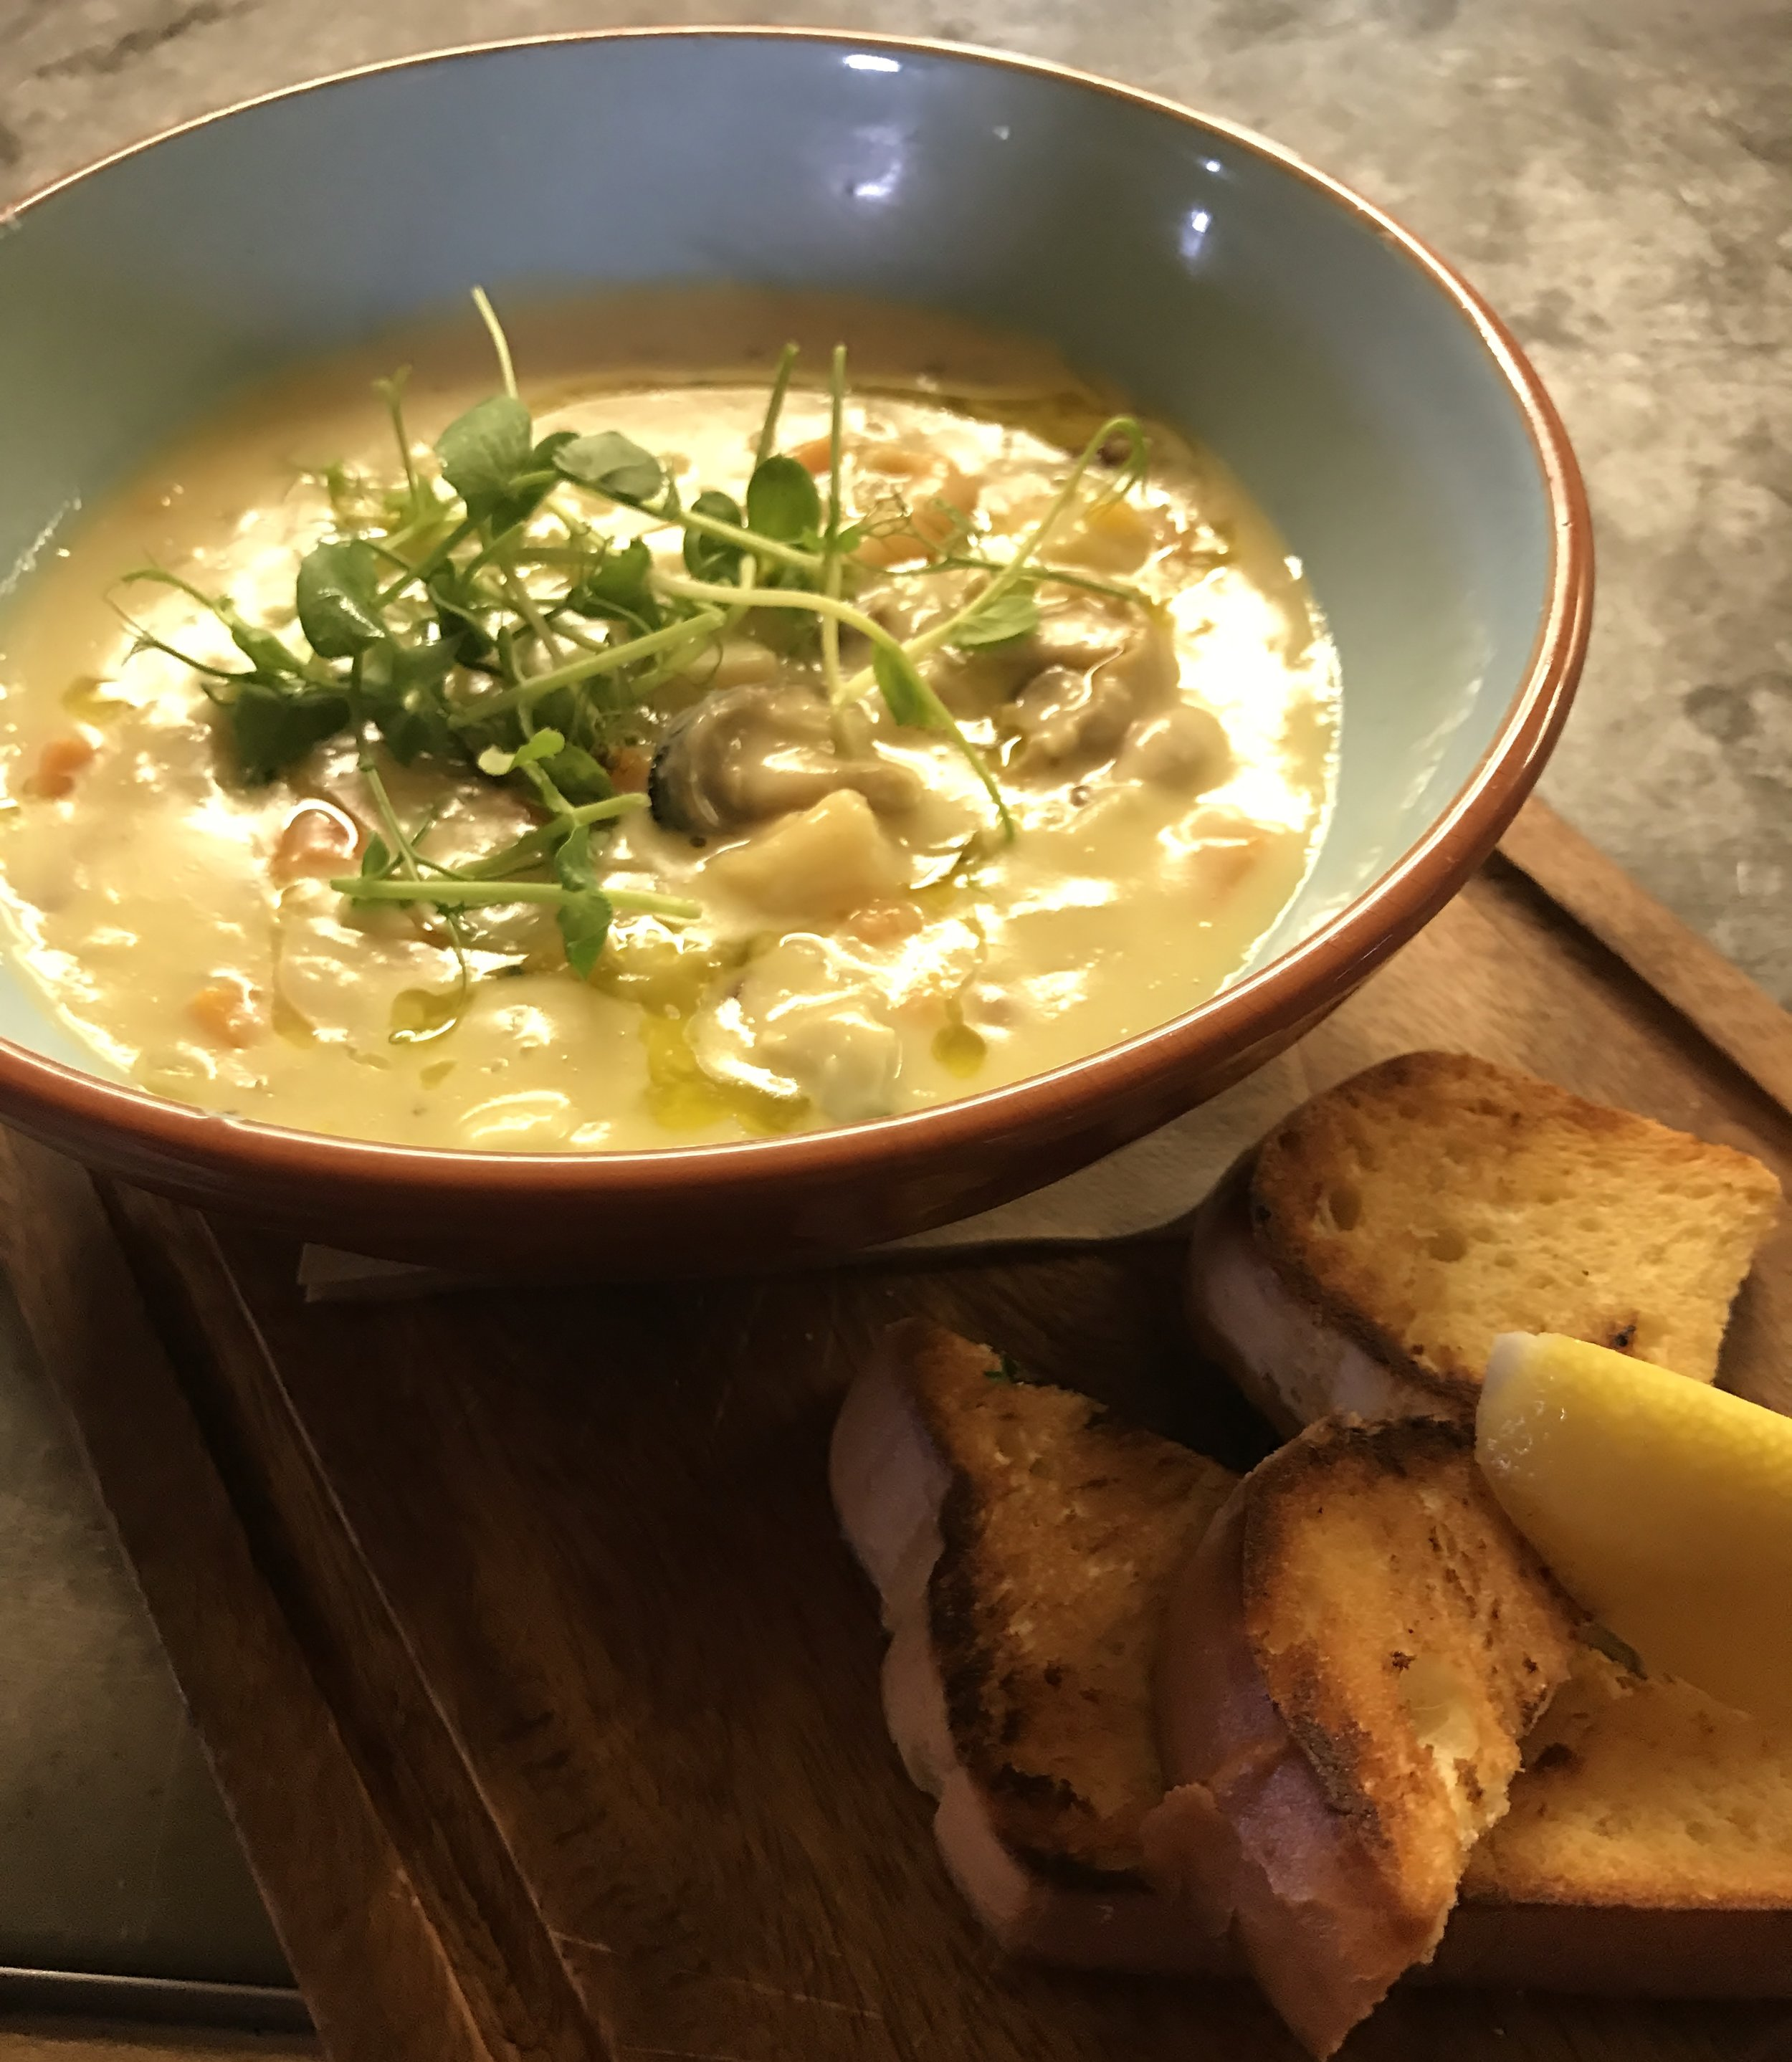 Stables Creamy Seafood Chowder